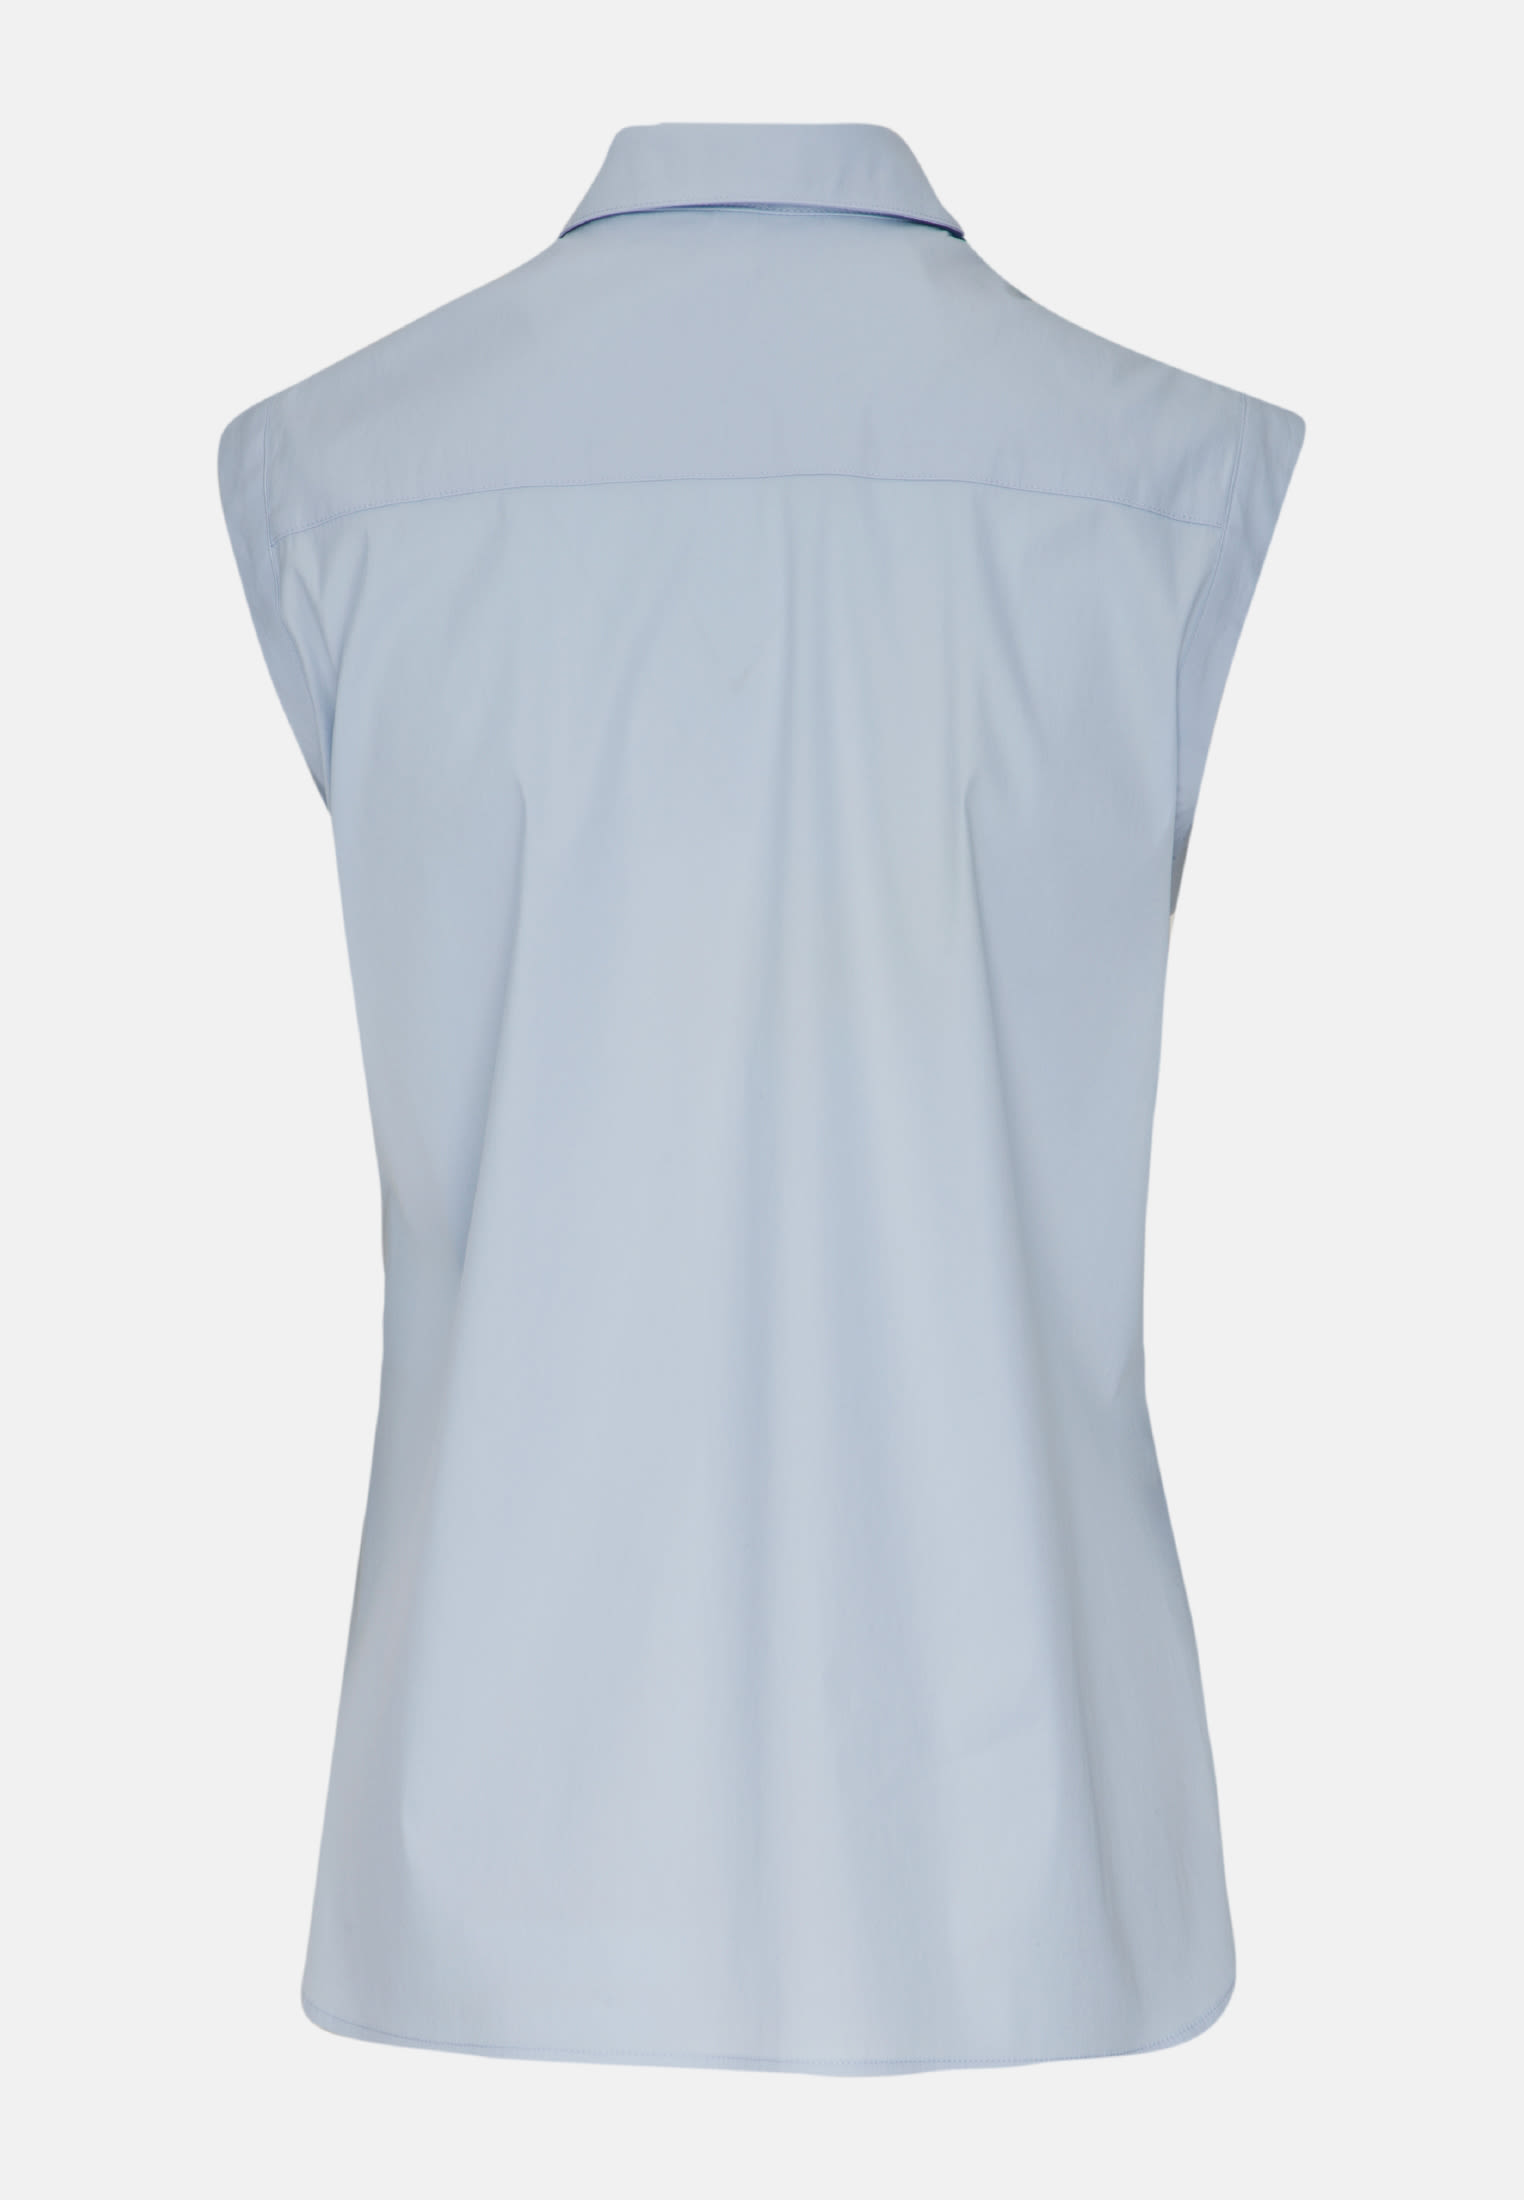 Sleeveless Poplin Shirt Blouse made of 81% Cotton 16% Polyamid/Nylon 3% Elastane in Hellblau |  Seidensticker Onlineshop